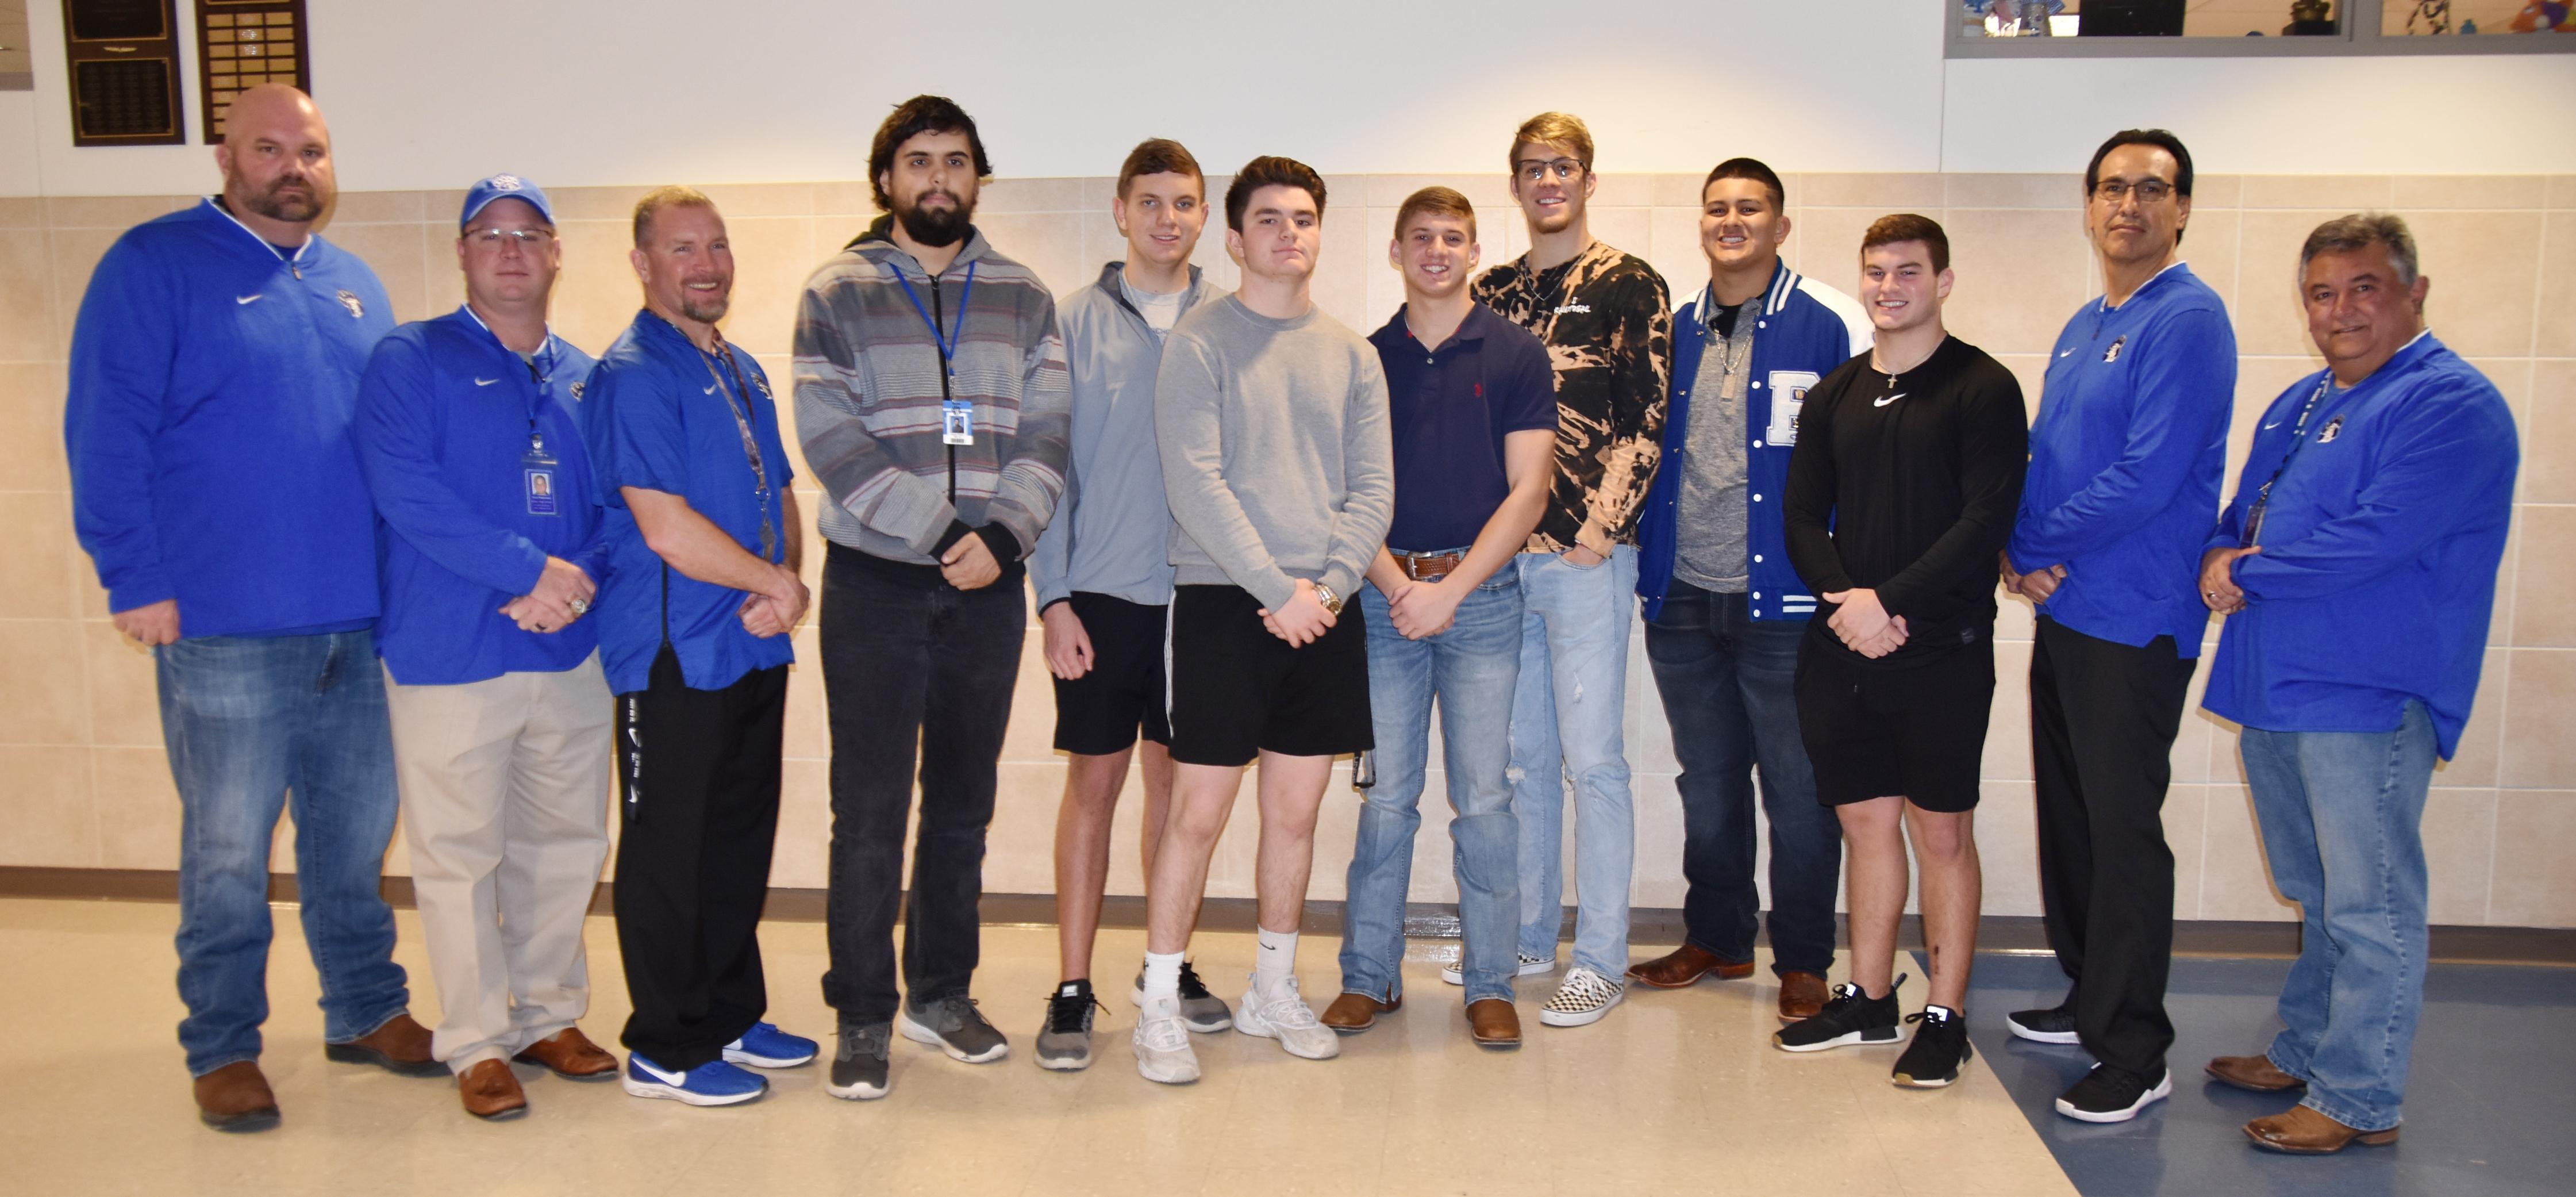 Brewer High School football players named Academic All State this year are: Adam Duncan, ELITE; Carson Ingram, 1st Team; Bryce Ramsey, 2nd Team; and Weston Dill, Barrett Hammonds, Jordan Matous and Christian Ramirez, Honorable Mention.